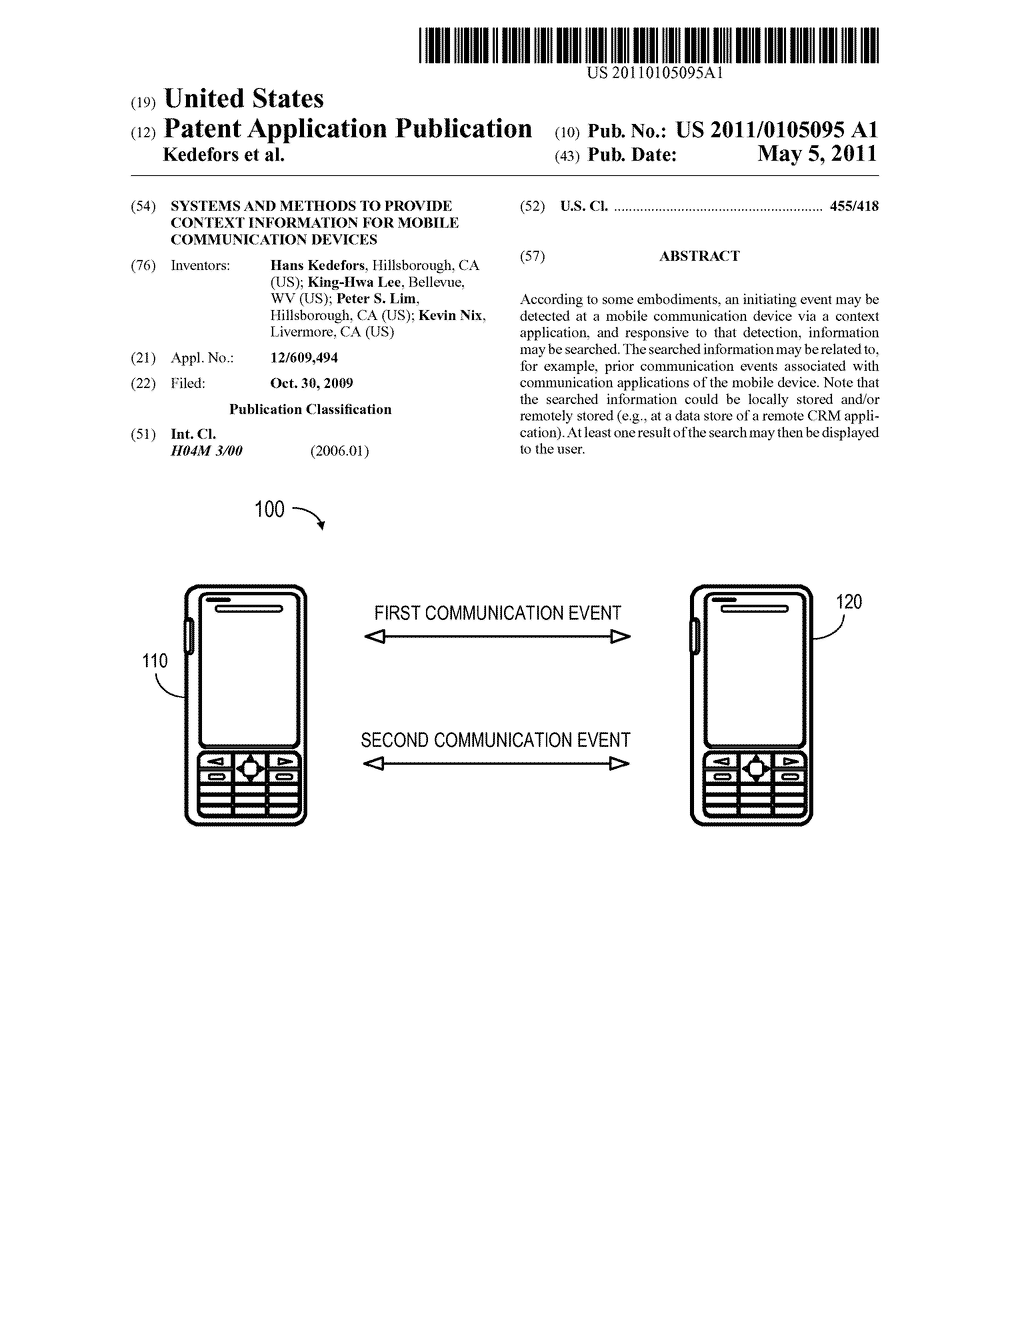 SYSTEMS AND METHODS TO PROVIDE CONTEXT INFORMATION FOR MOBILE COMMUNICATION DEVICES - diagram, schematic, and image 01